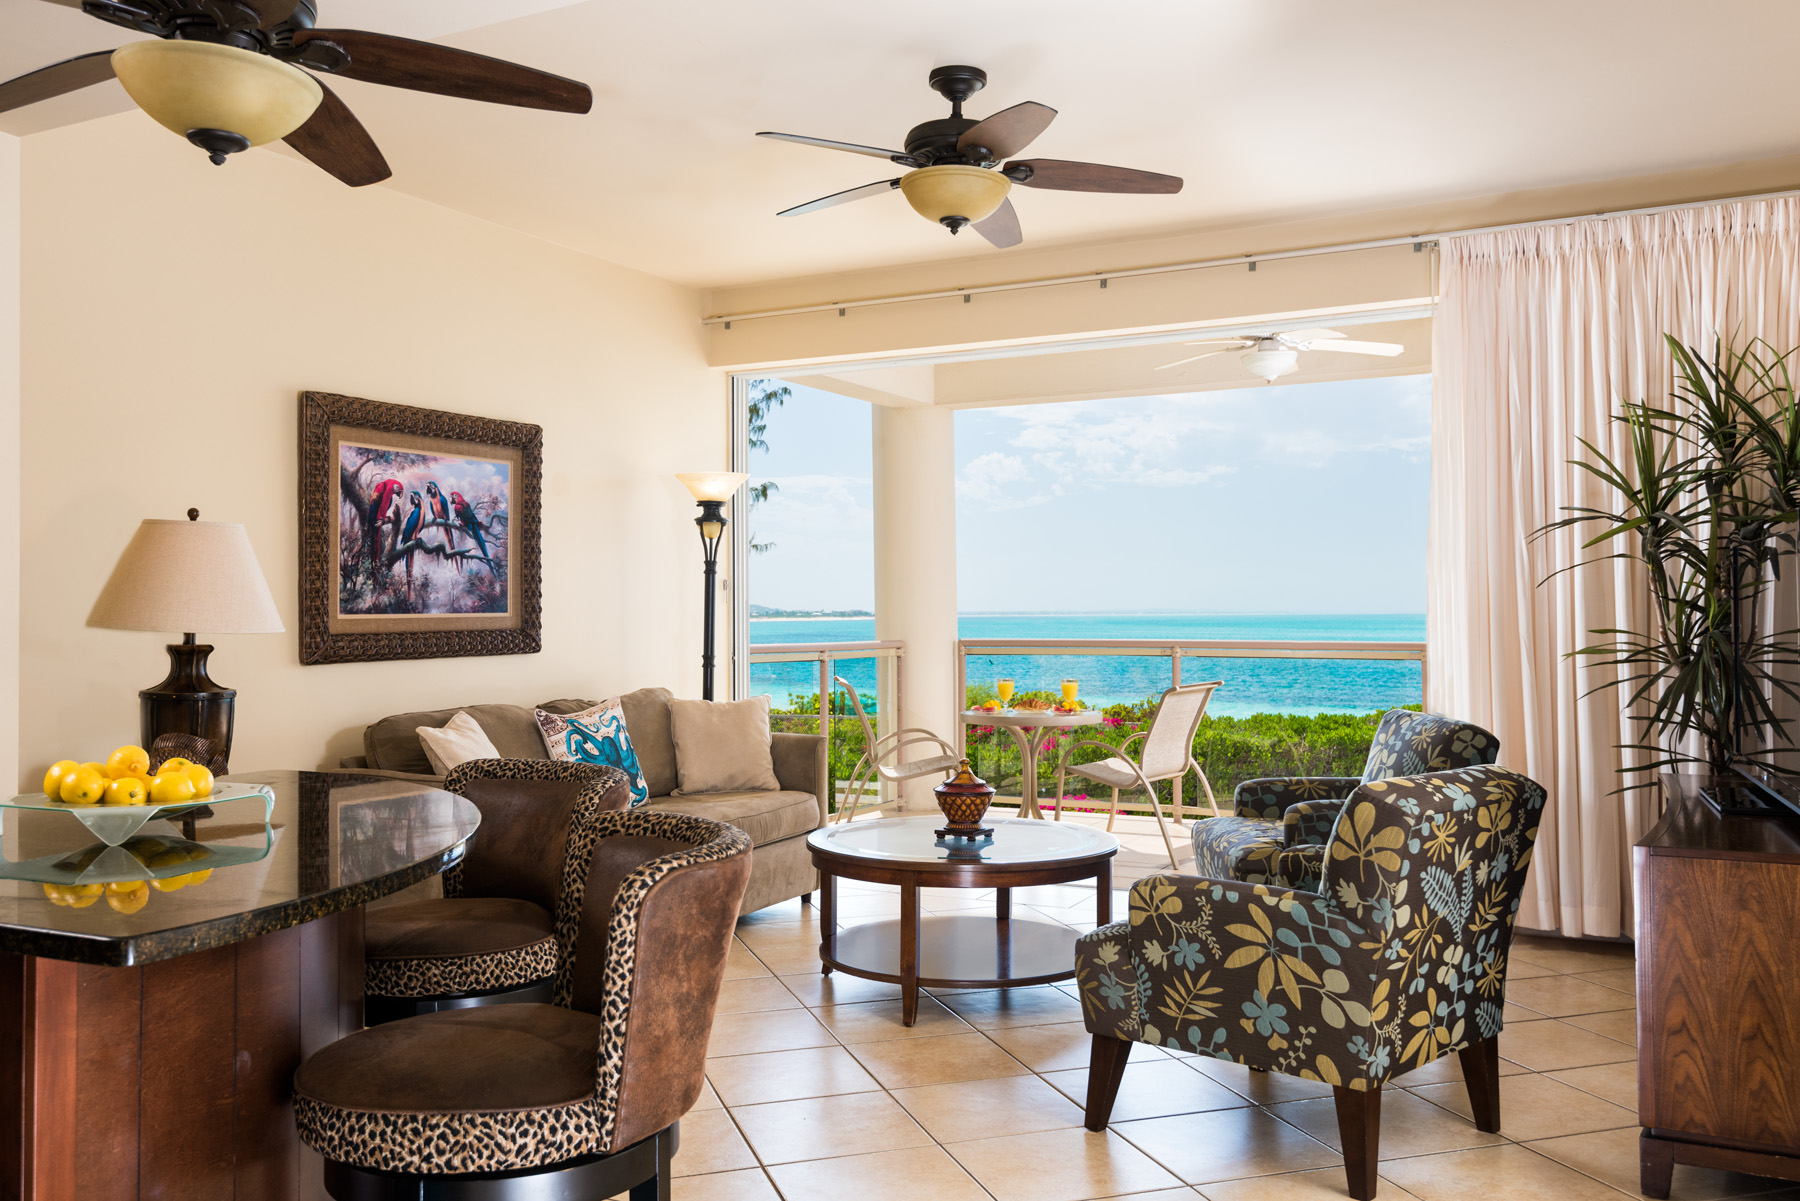 Condominium for Sale at Coral Gardens - Suite 4202 Beachfront Grace Bay, Providenciales TC Turks And Caicos Islands